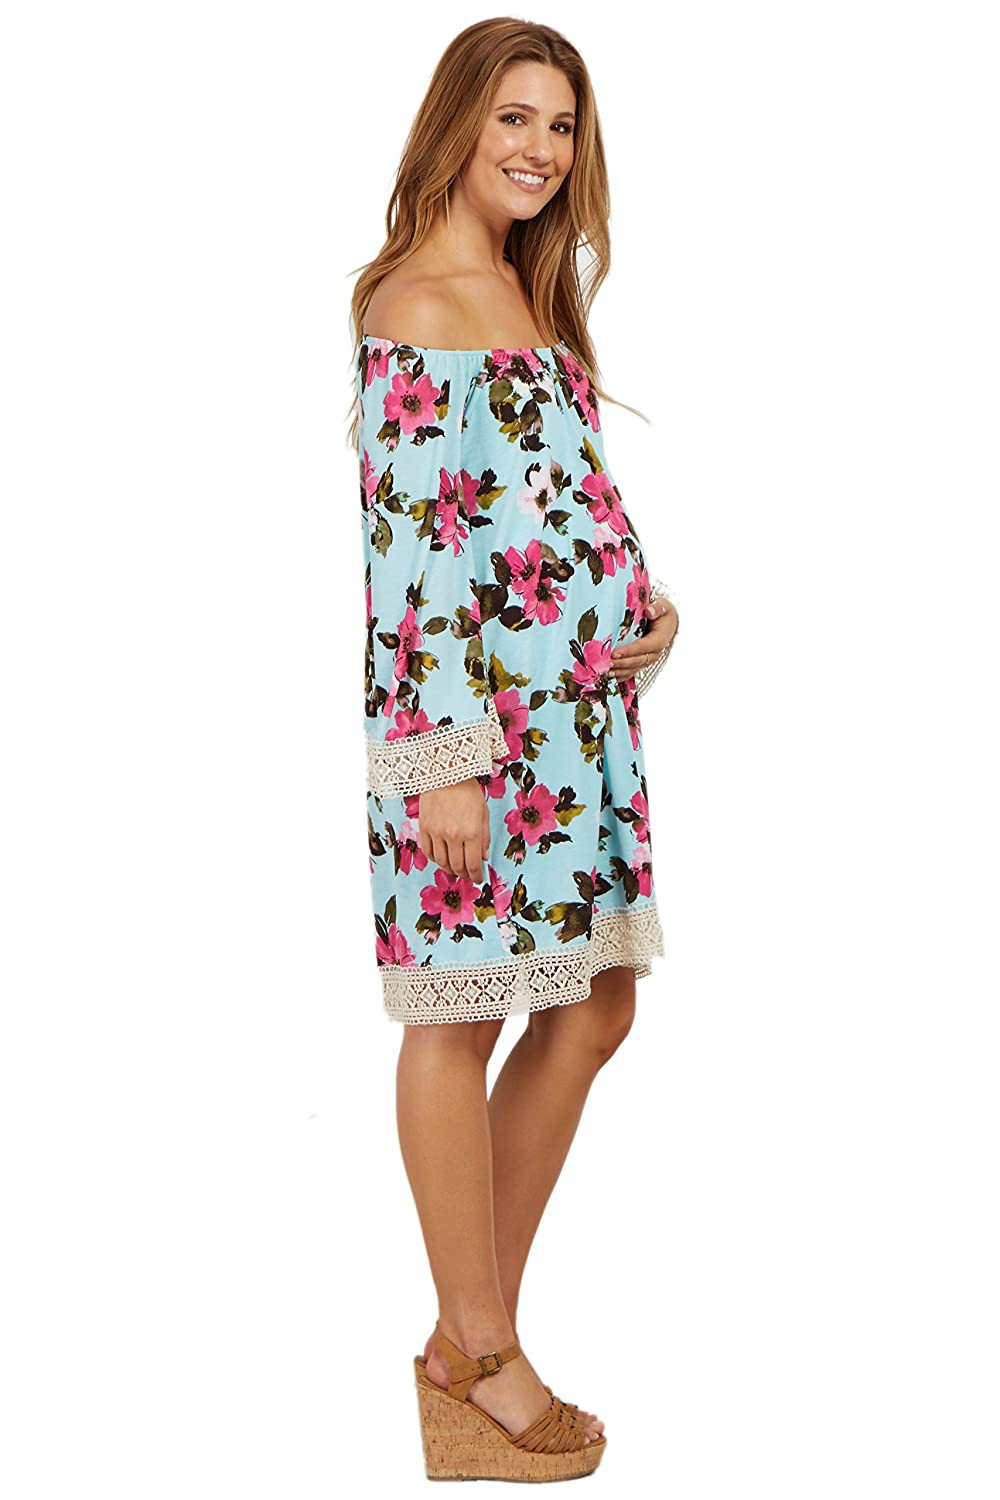 PinkBlush Maternity Floral Crochet Trim Off Shoulder Dress at Amazon Womens Clothing store: